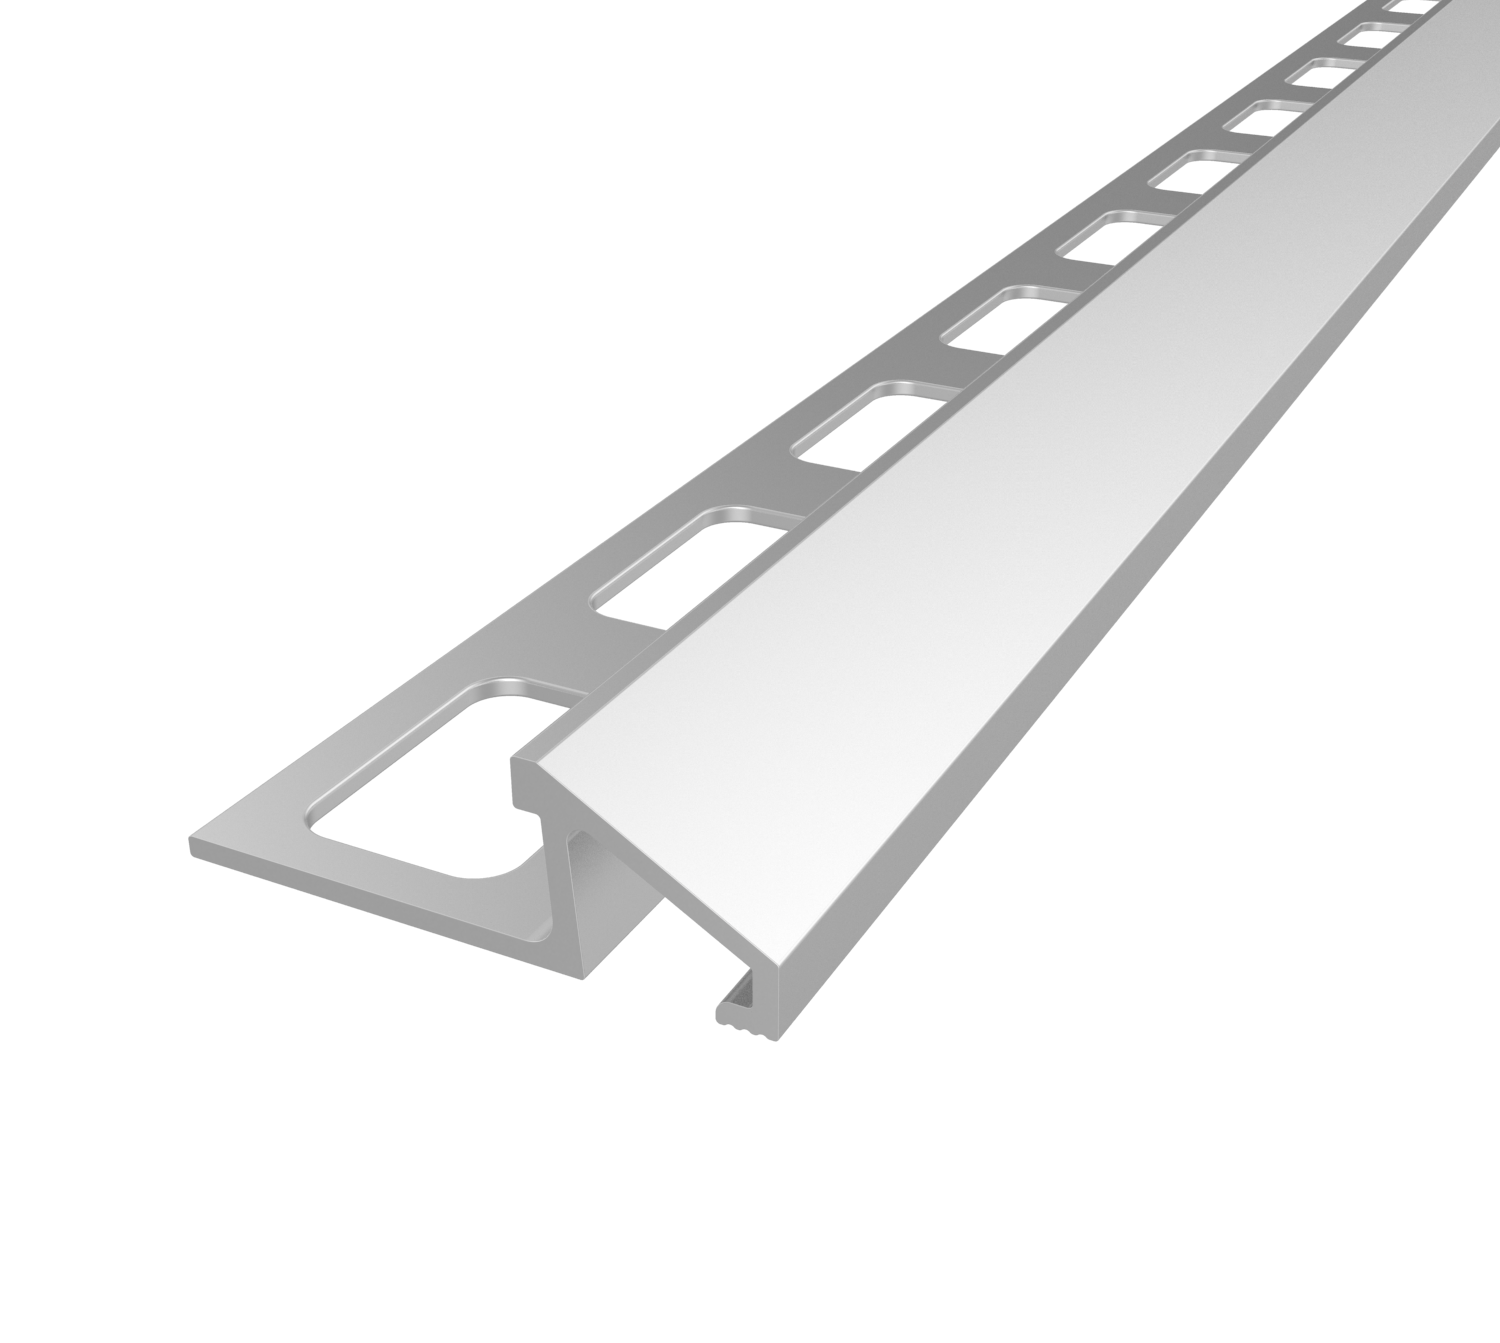 Essential Satin Silver 10 mm Angled Shape Aluminum Tile Edging Trim